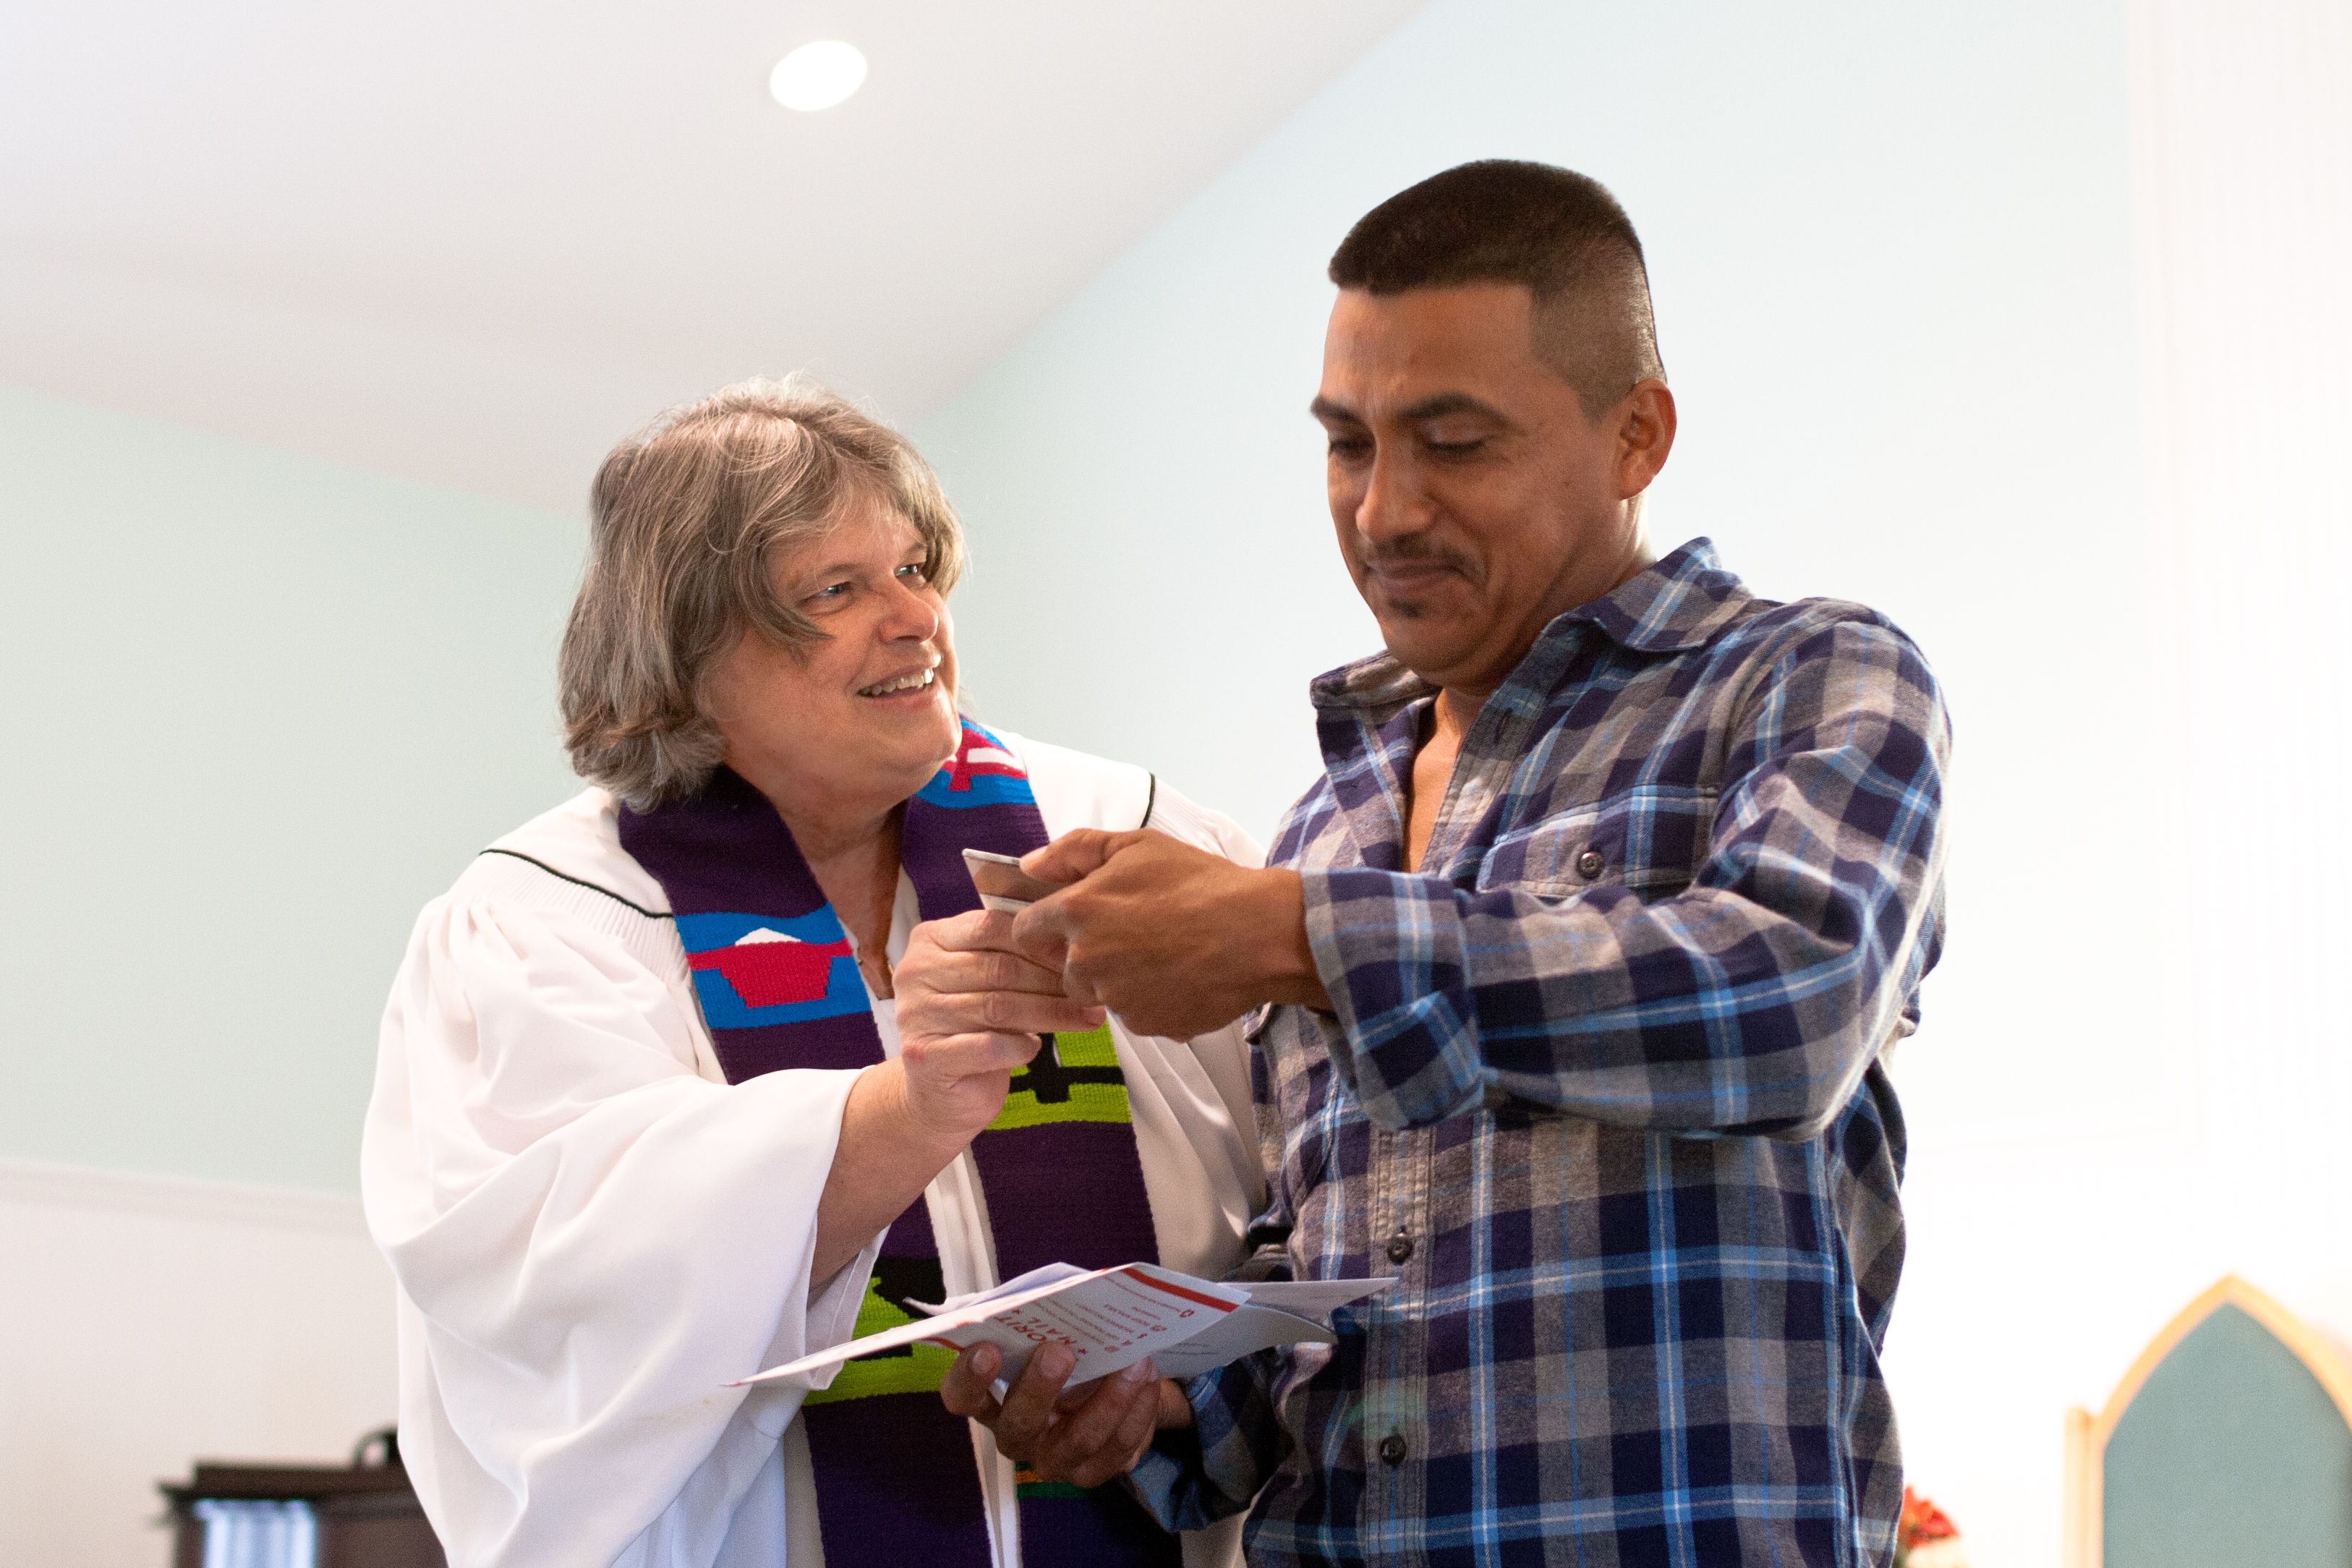 Janet presenting a client with his new Green Card.